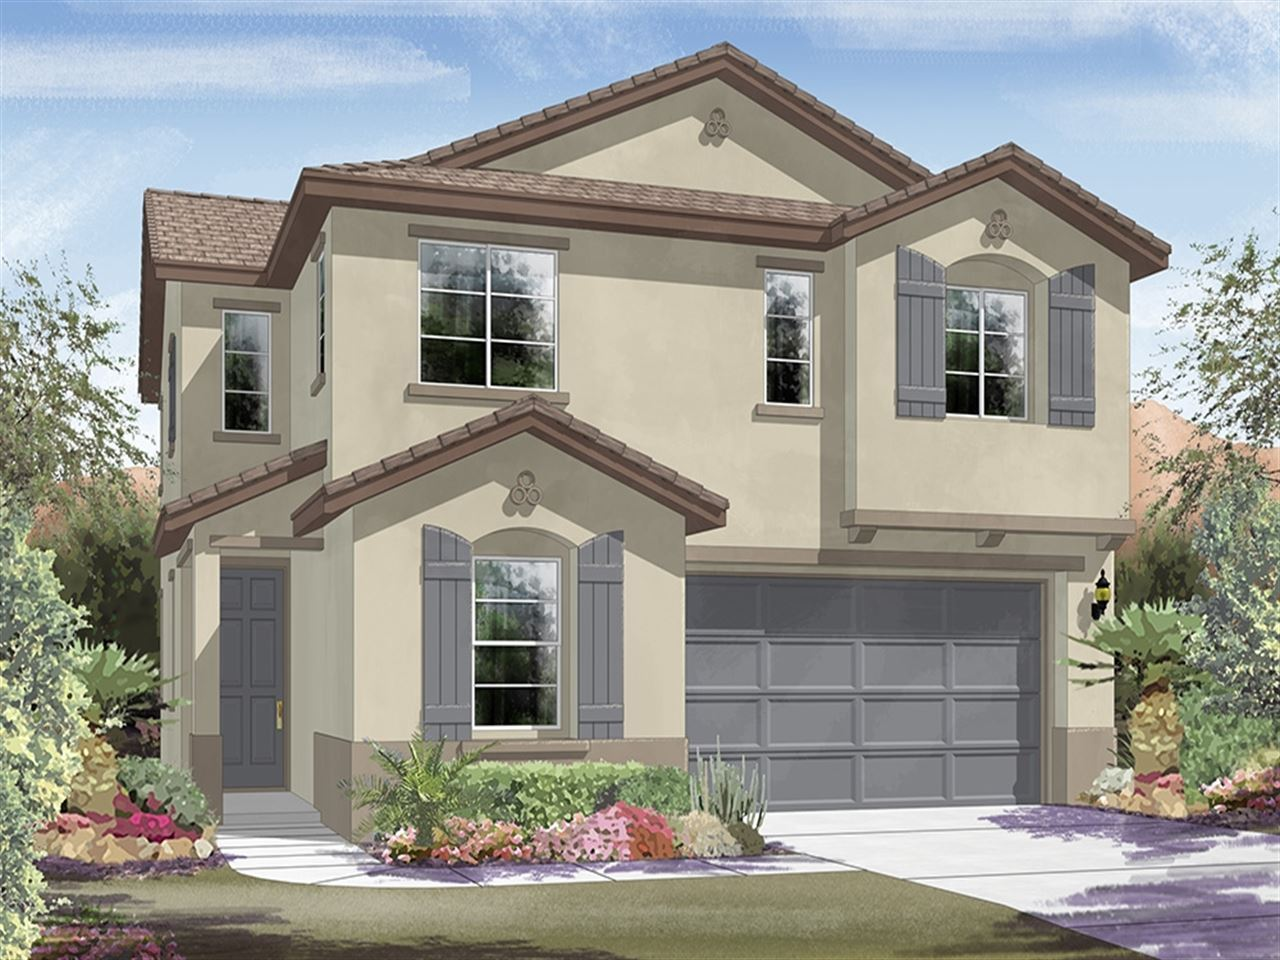 Nellis afb new homes topix for Ryland homes